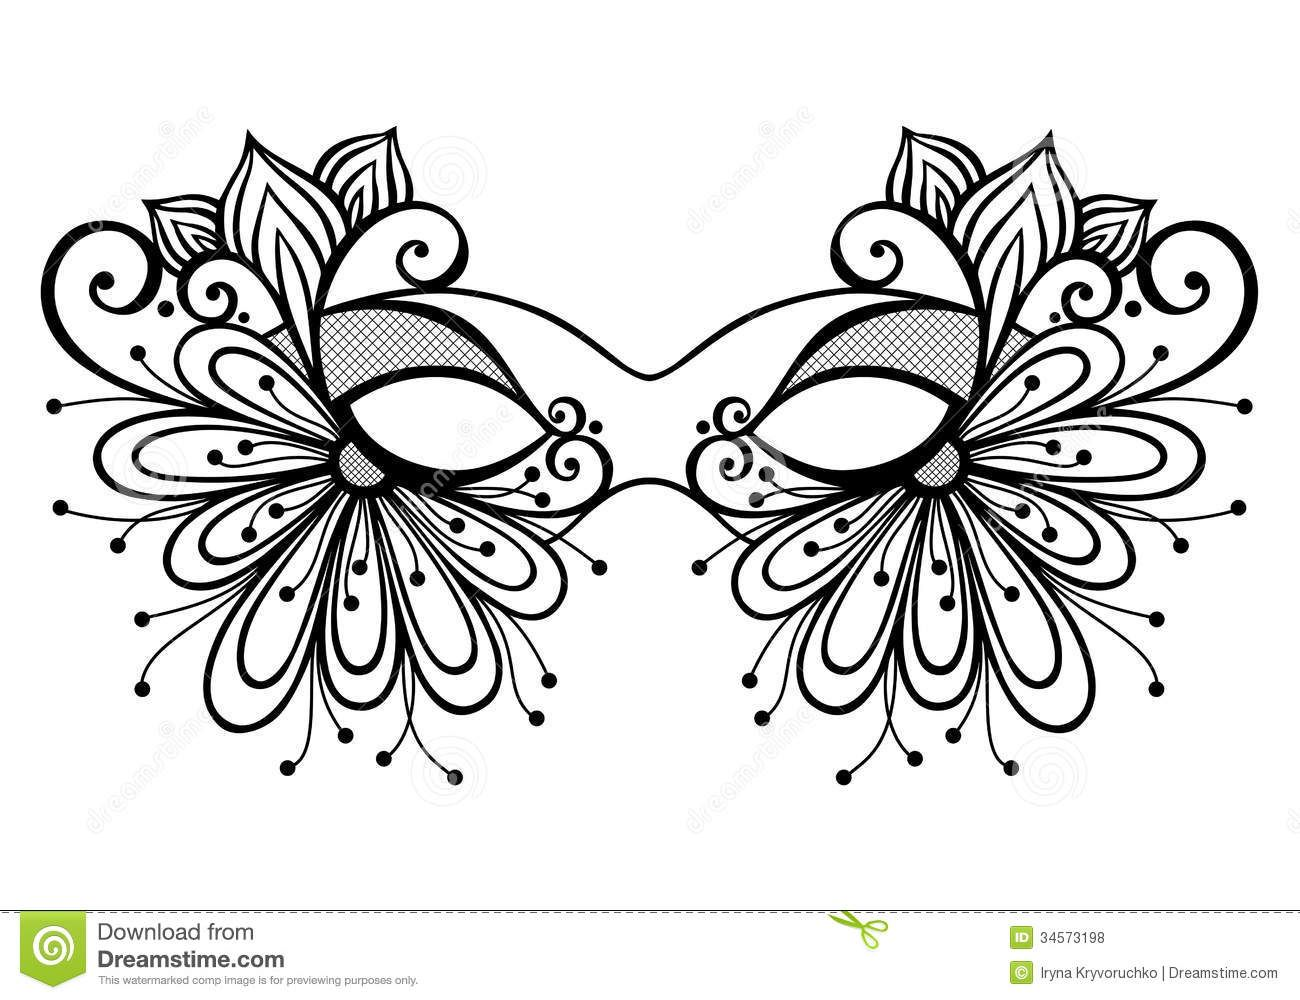 Masquerade mask download from over 28 million high quality stock masquerade mask download from over 28 million high quality stock photos images vectors masquerade mask templatemardi gras pronofoot35fo Images